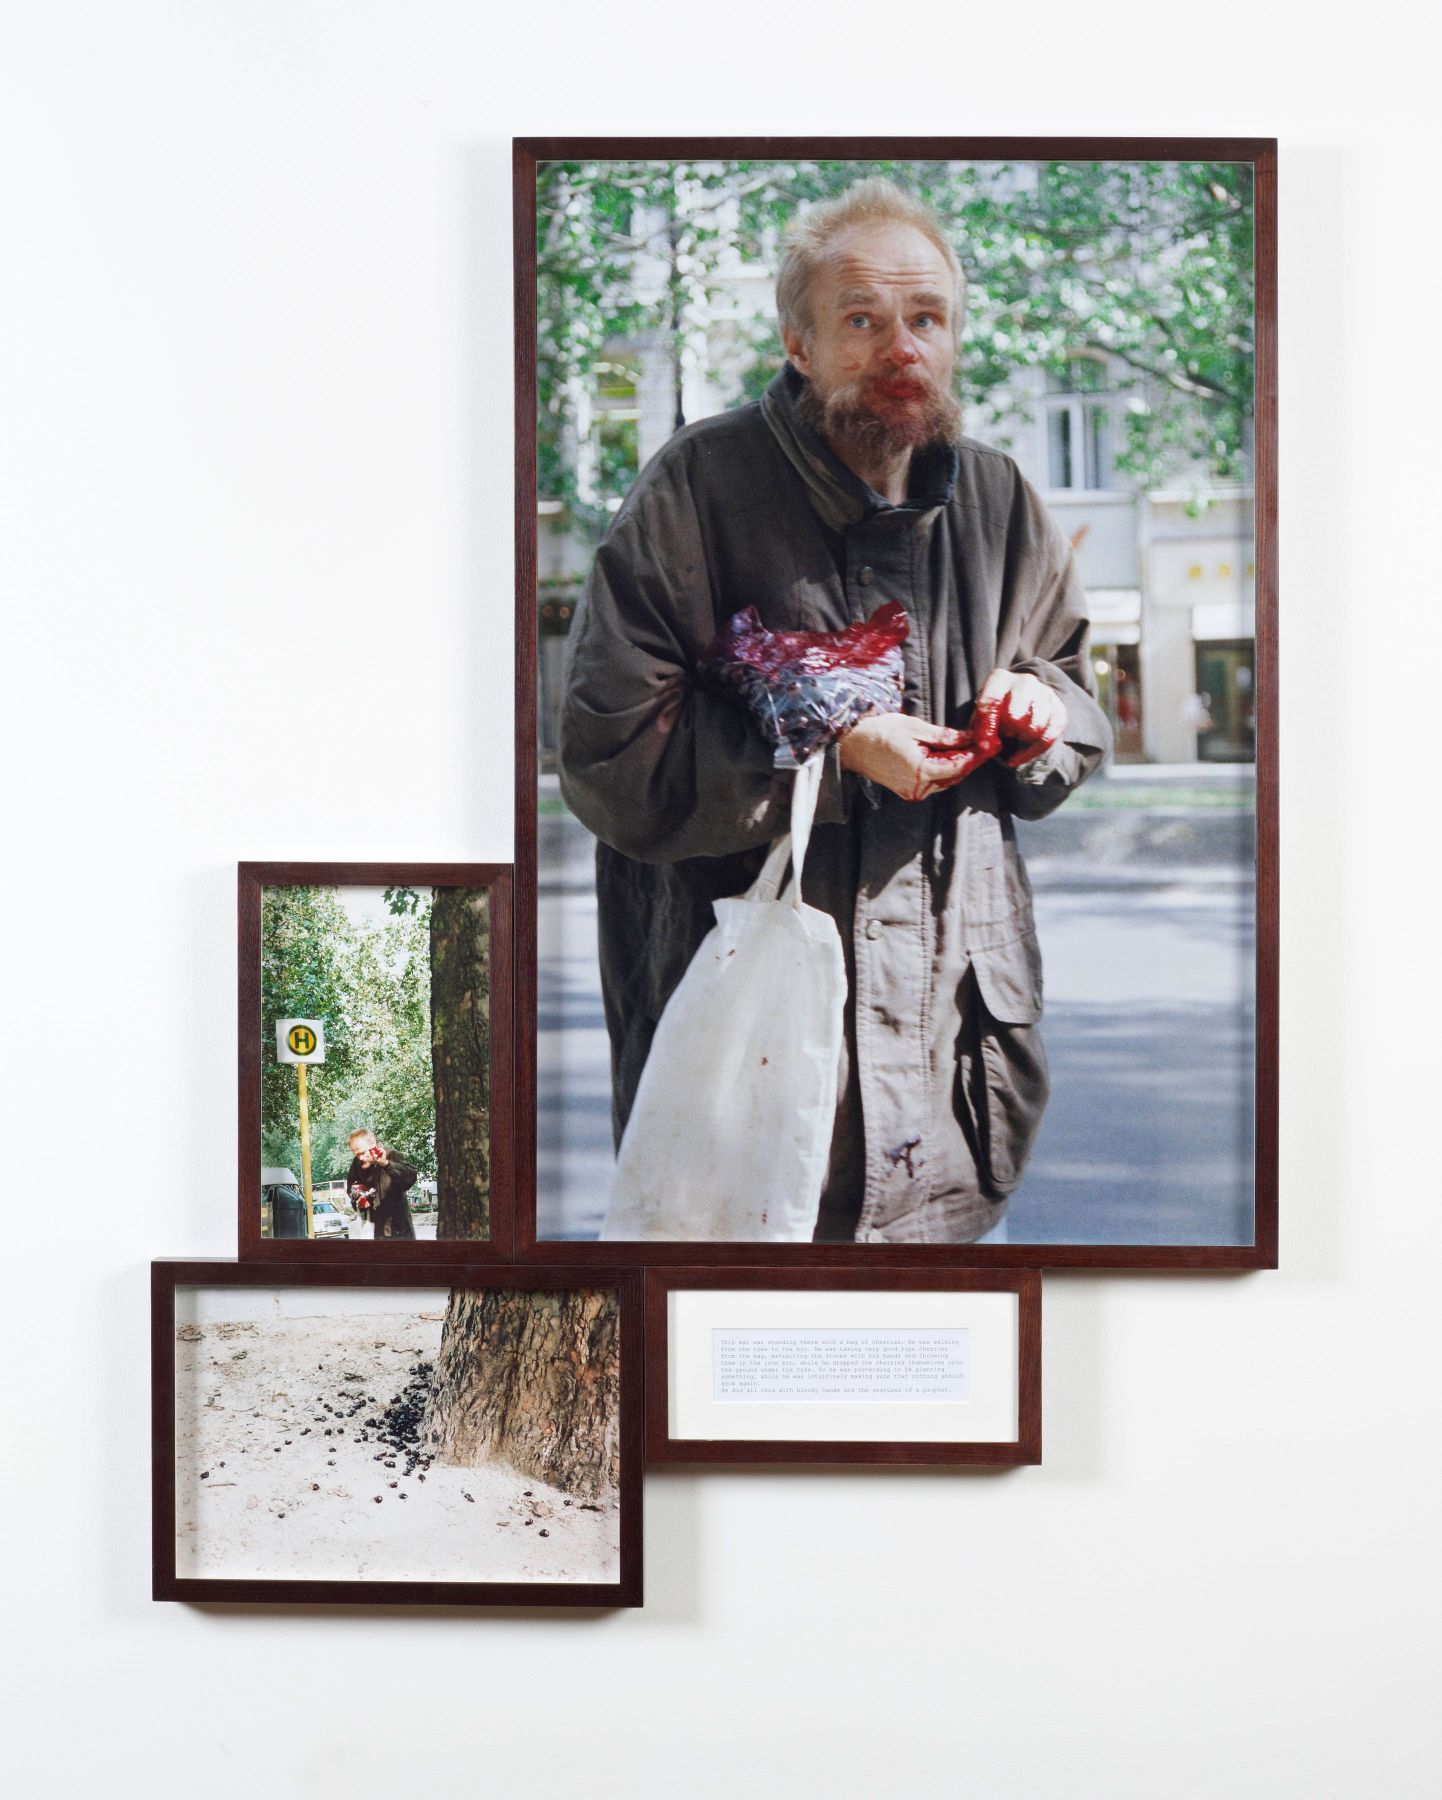 Boris Mikhailov Man with Cherries from Look At Me I Look At Water series, 1999